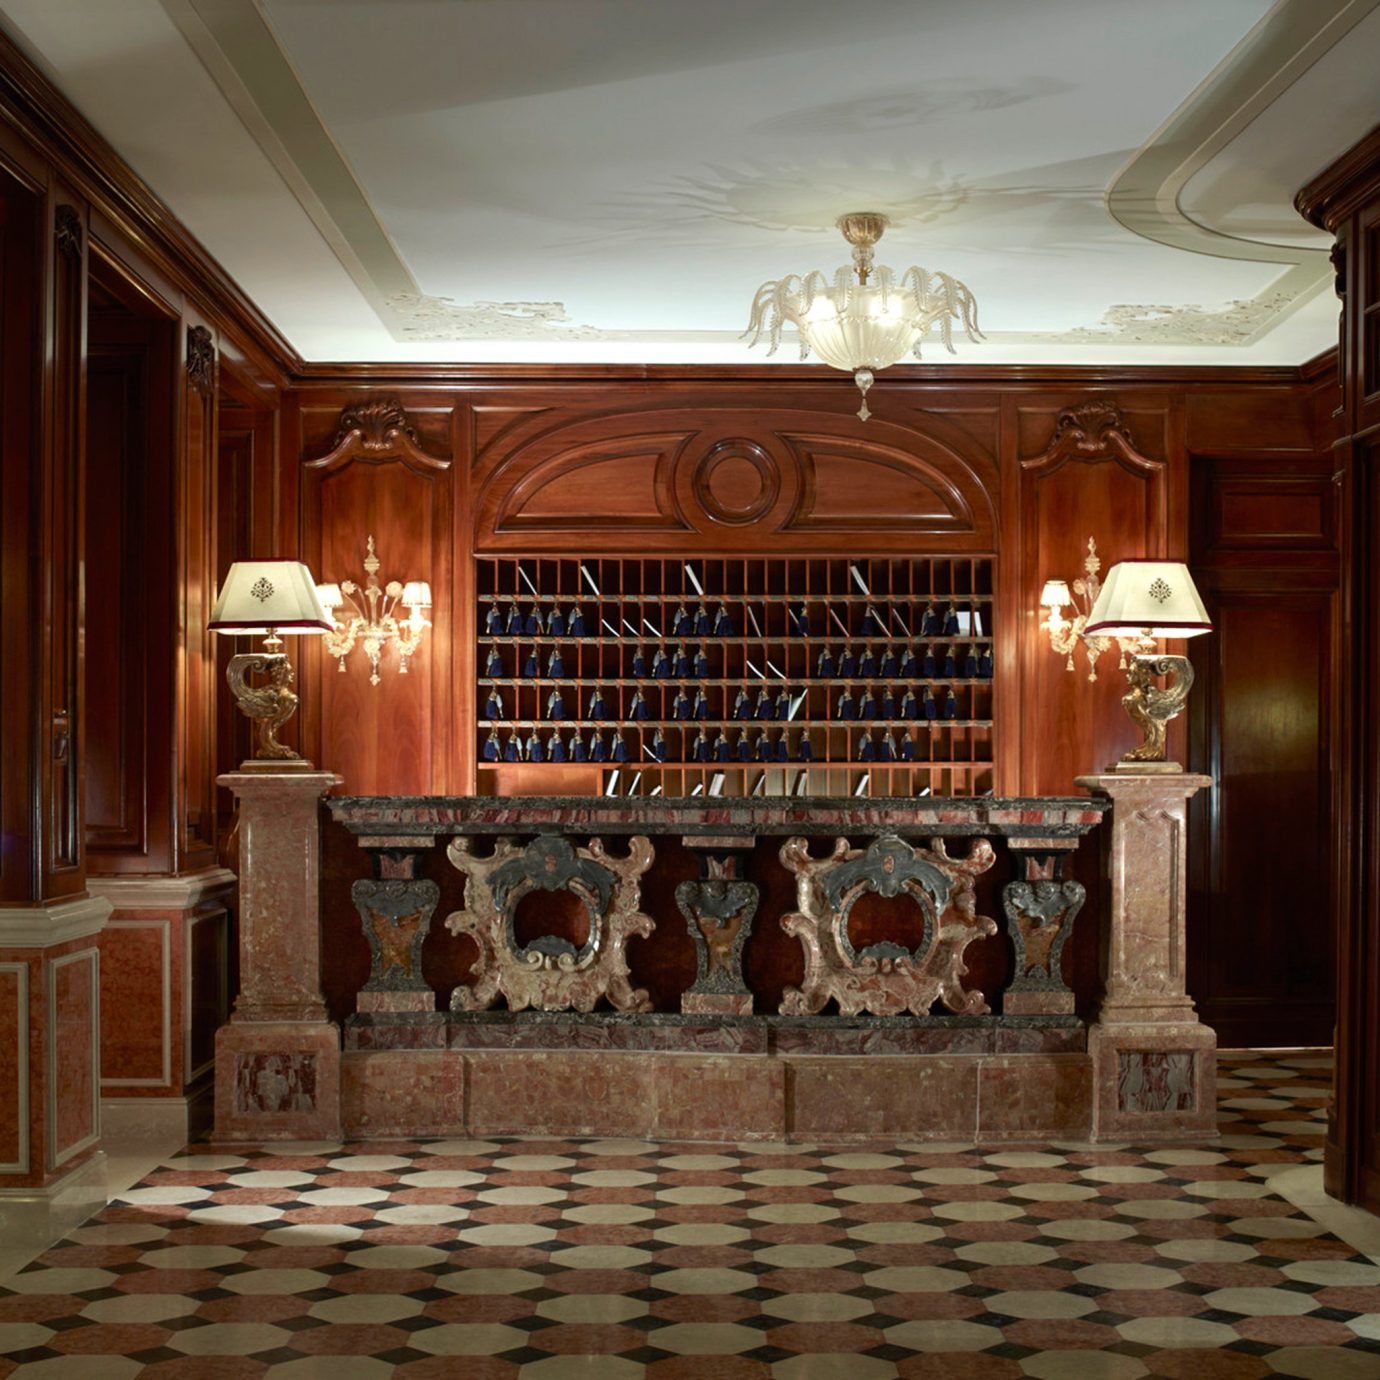 City Elegant Historic Lobby Luxury Trip Ideas property mansion living room home palace hall cabinetry chapel flooring synagogue